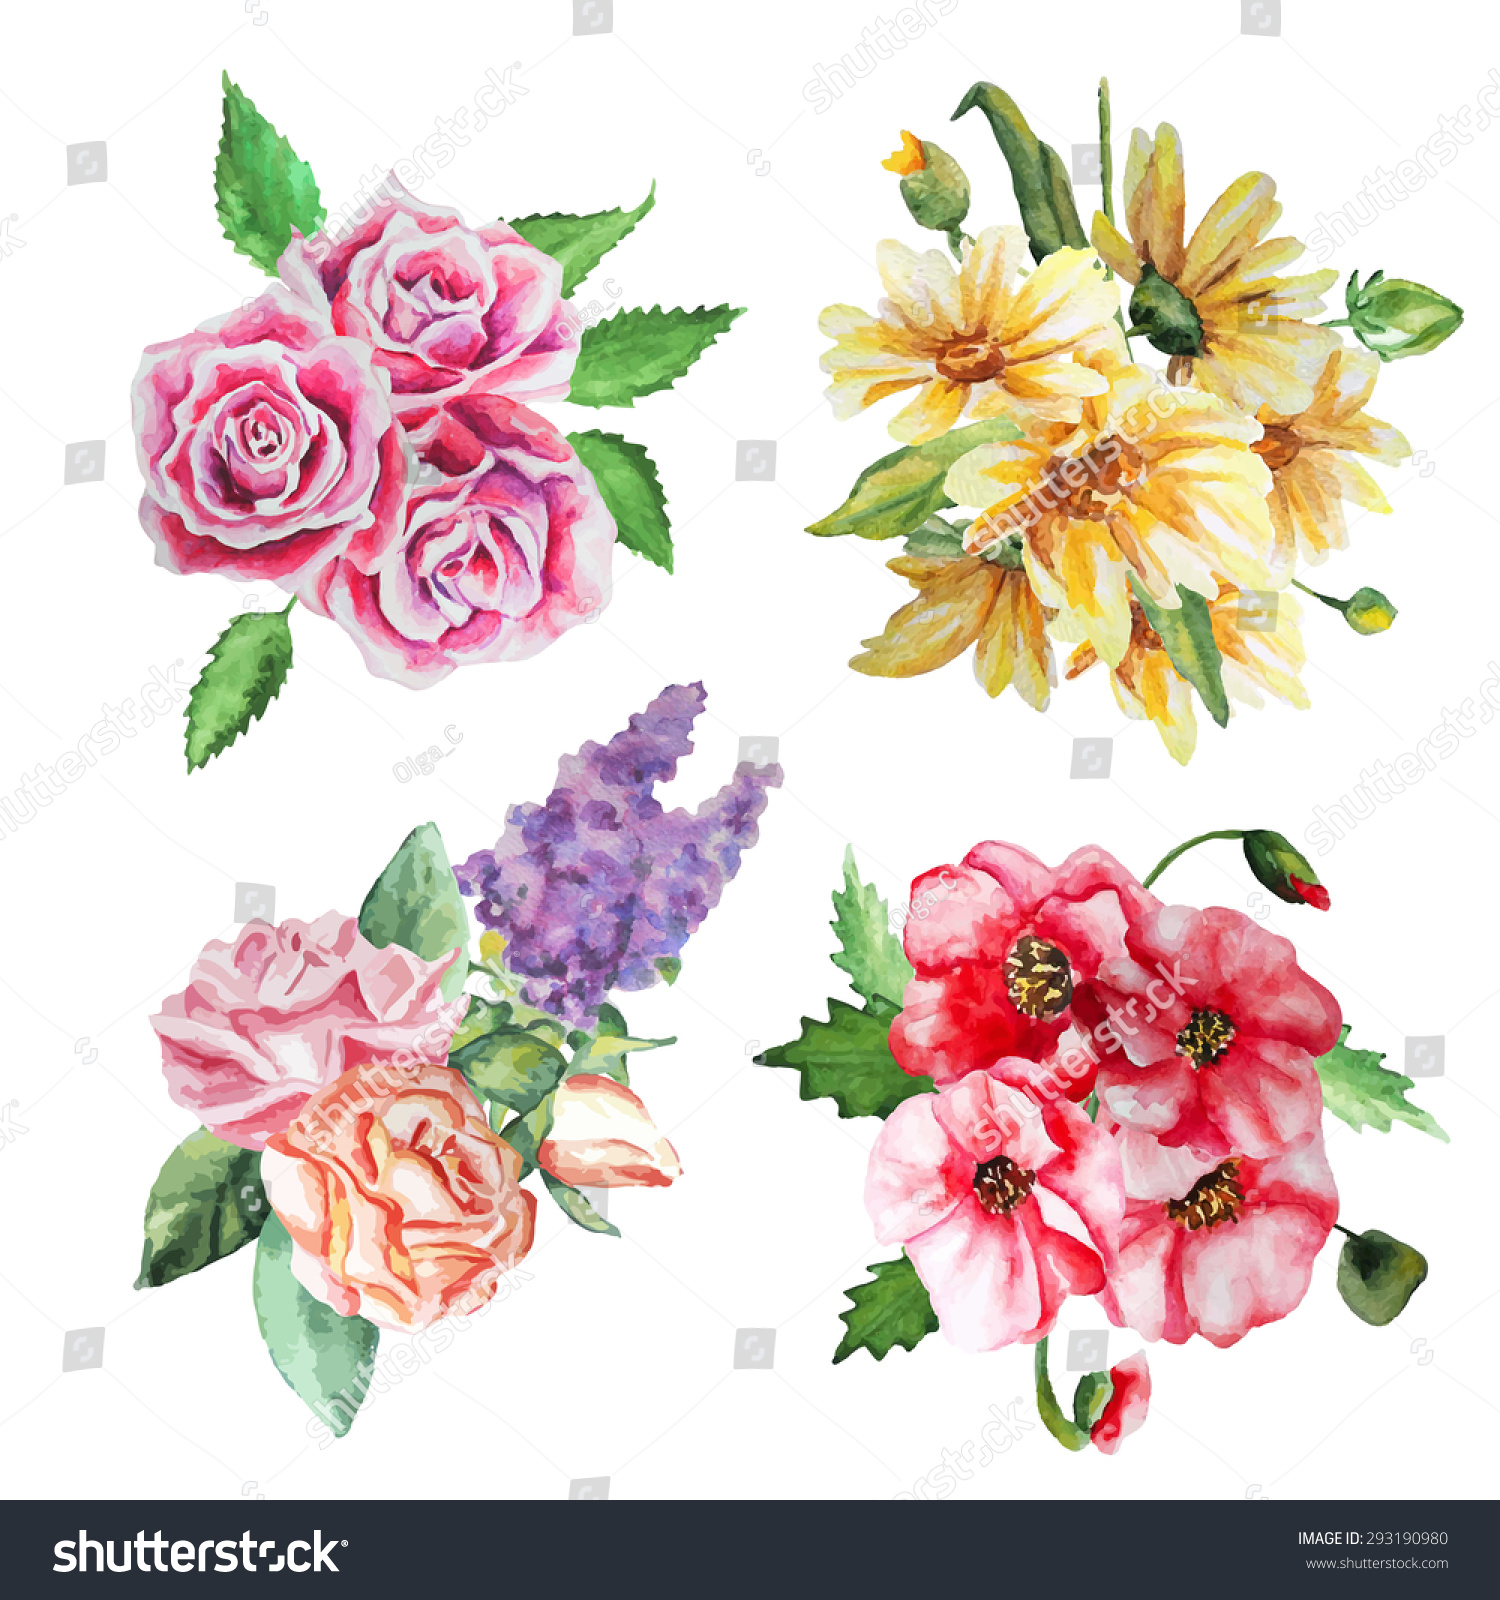 Watercolor Floral Bouquets Bouquet Roses Poppies Stock Vector (2018 ...